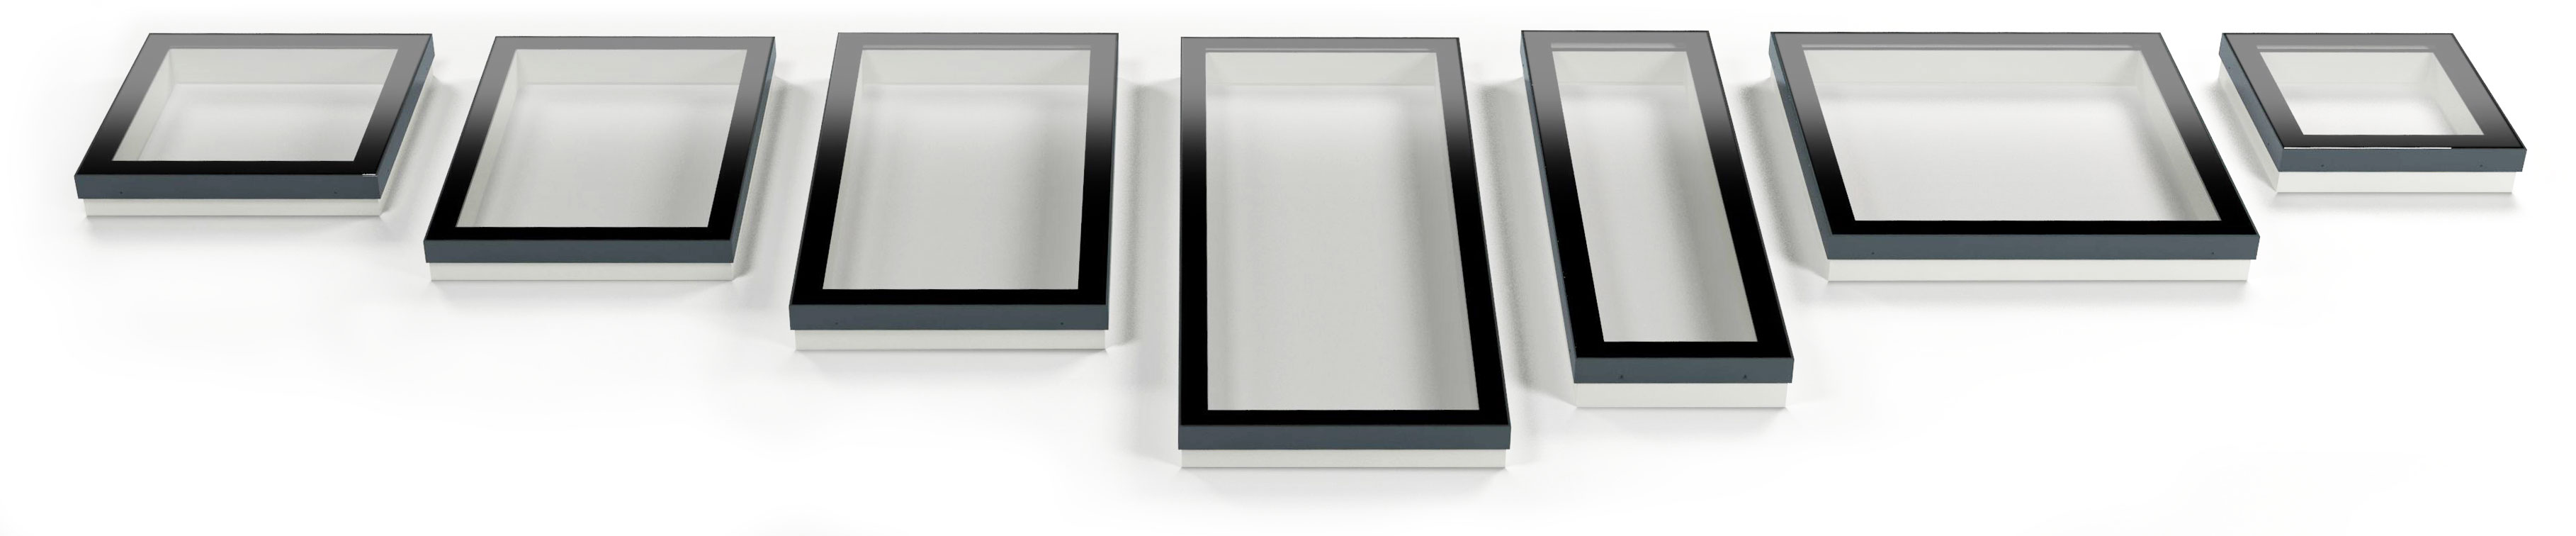 How To Choose The Right Skylights For Your Home By Eos